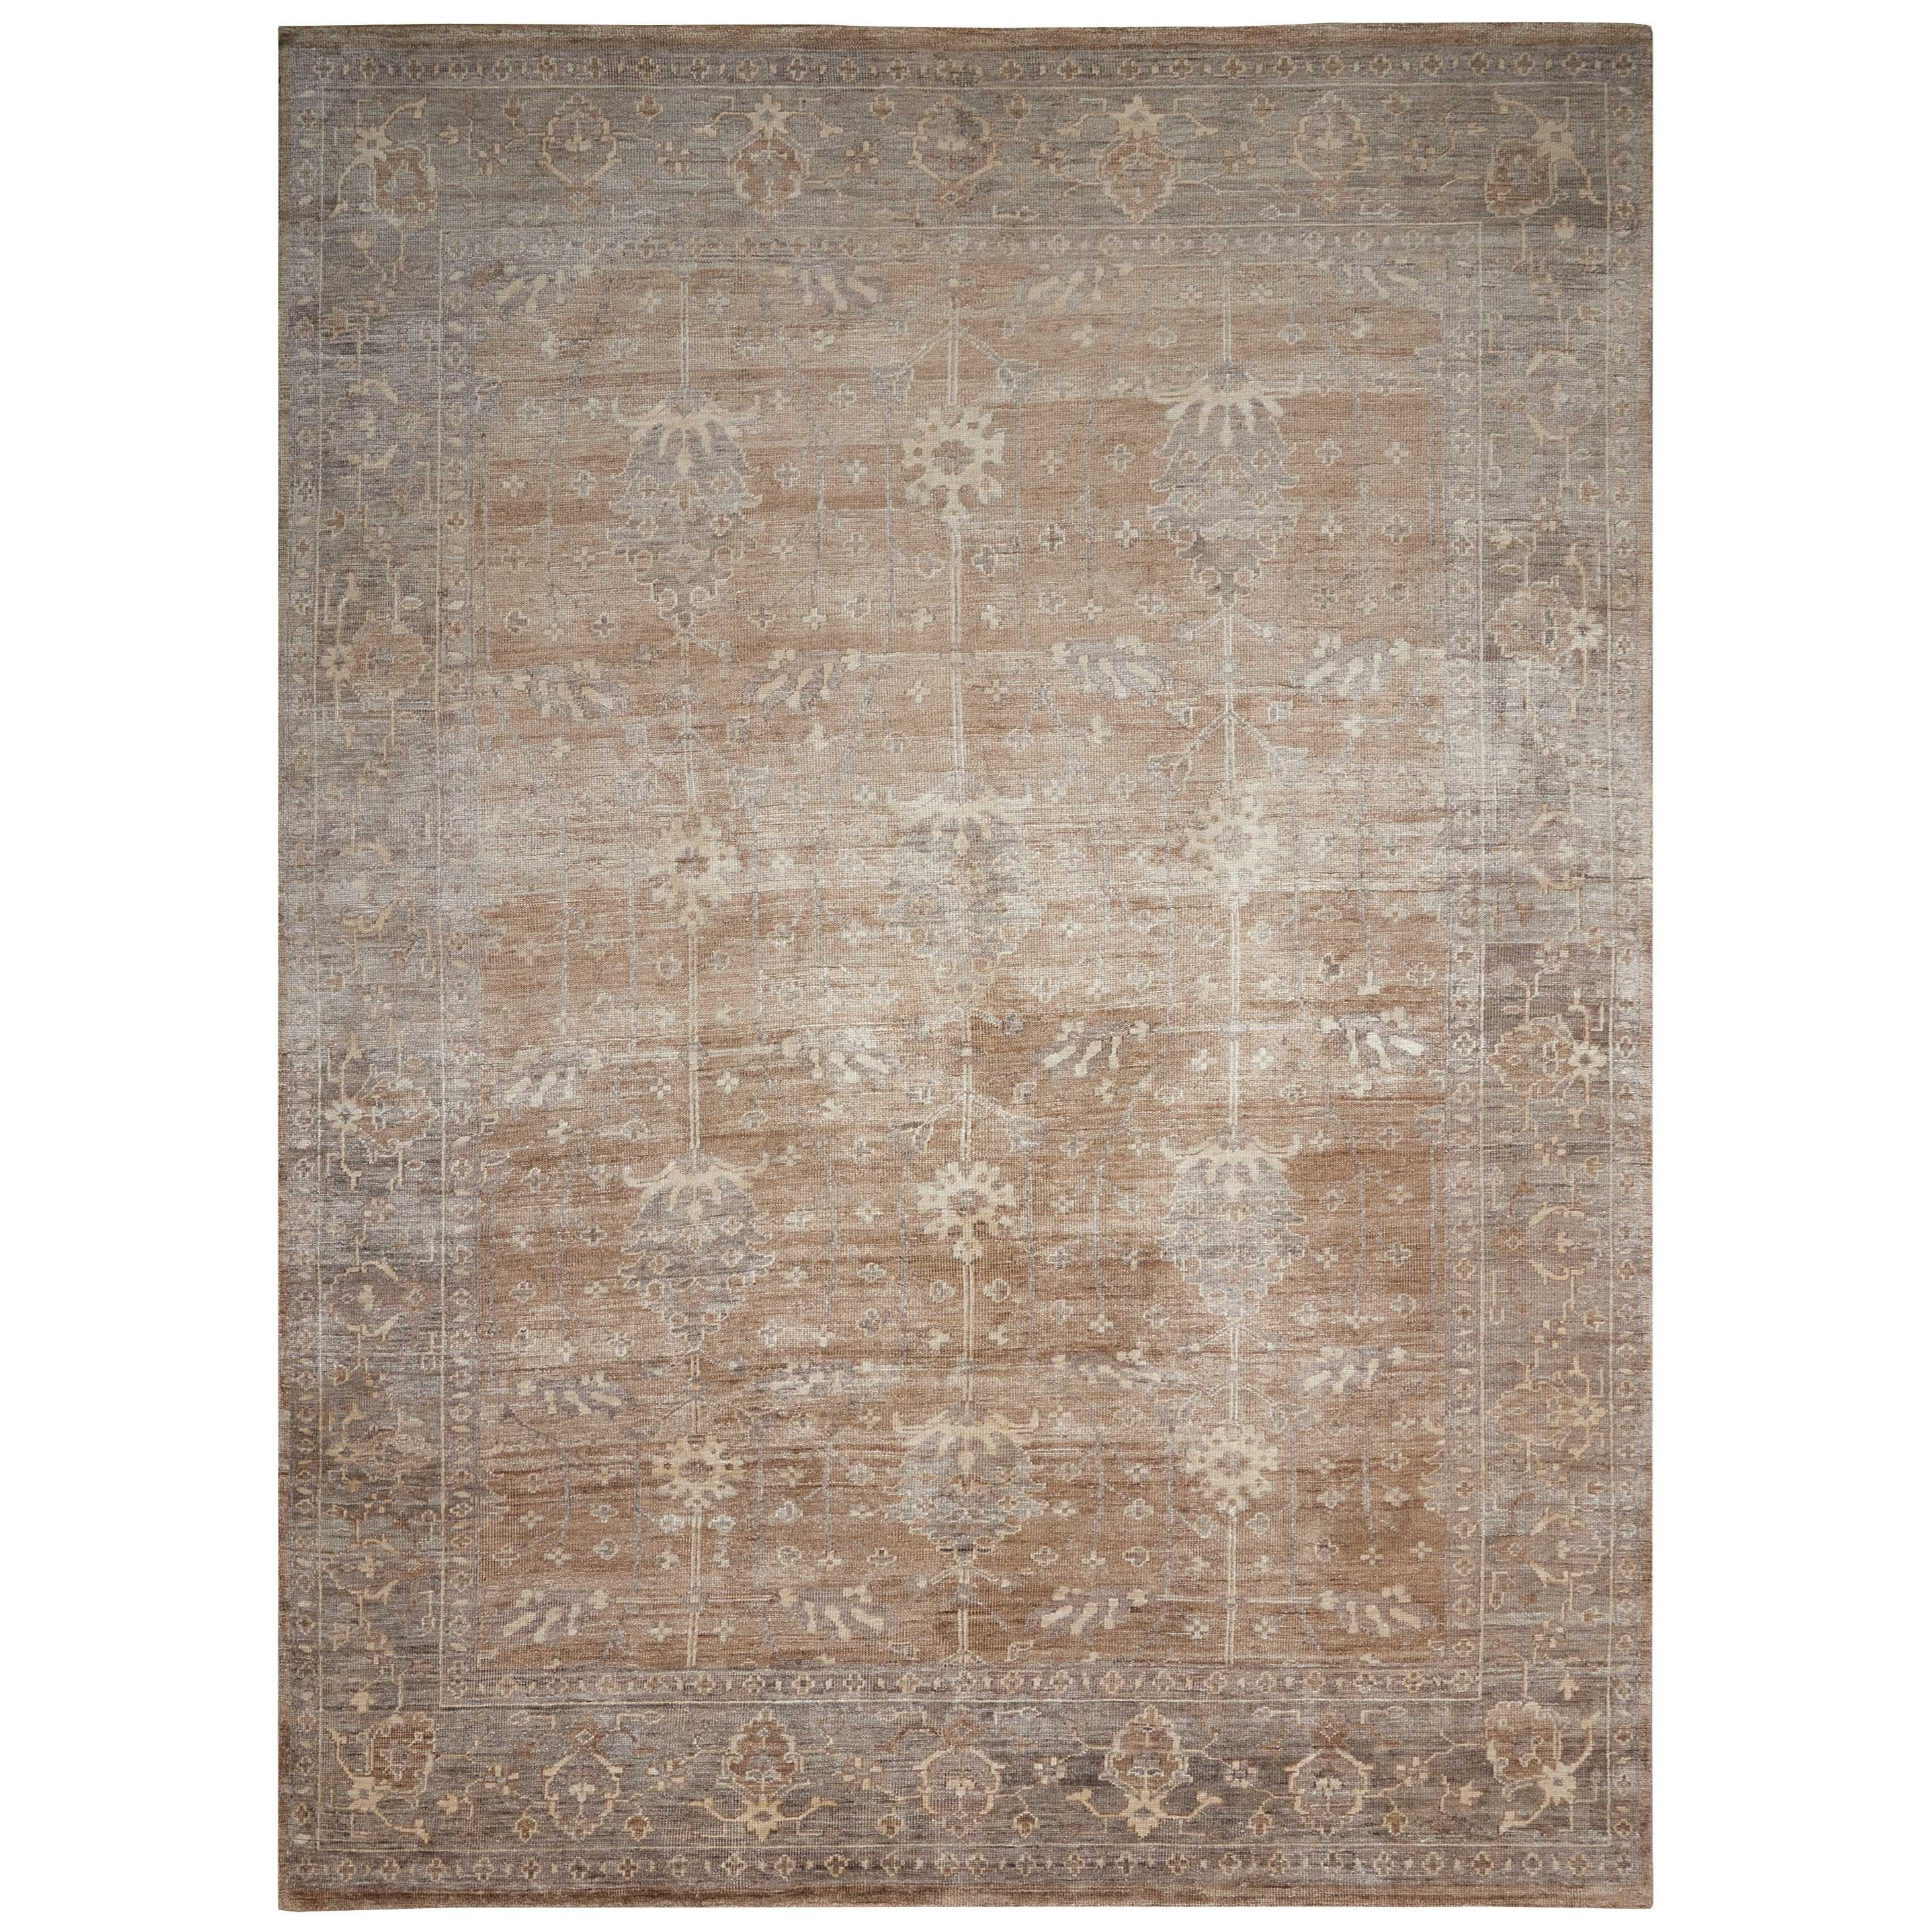 "Aldora1 9'9"" X 13'9"" Pewter Rug by Nourison at Sprintz Furniture"